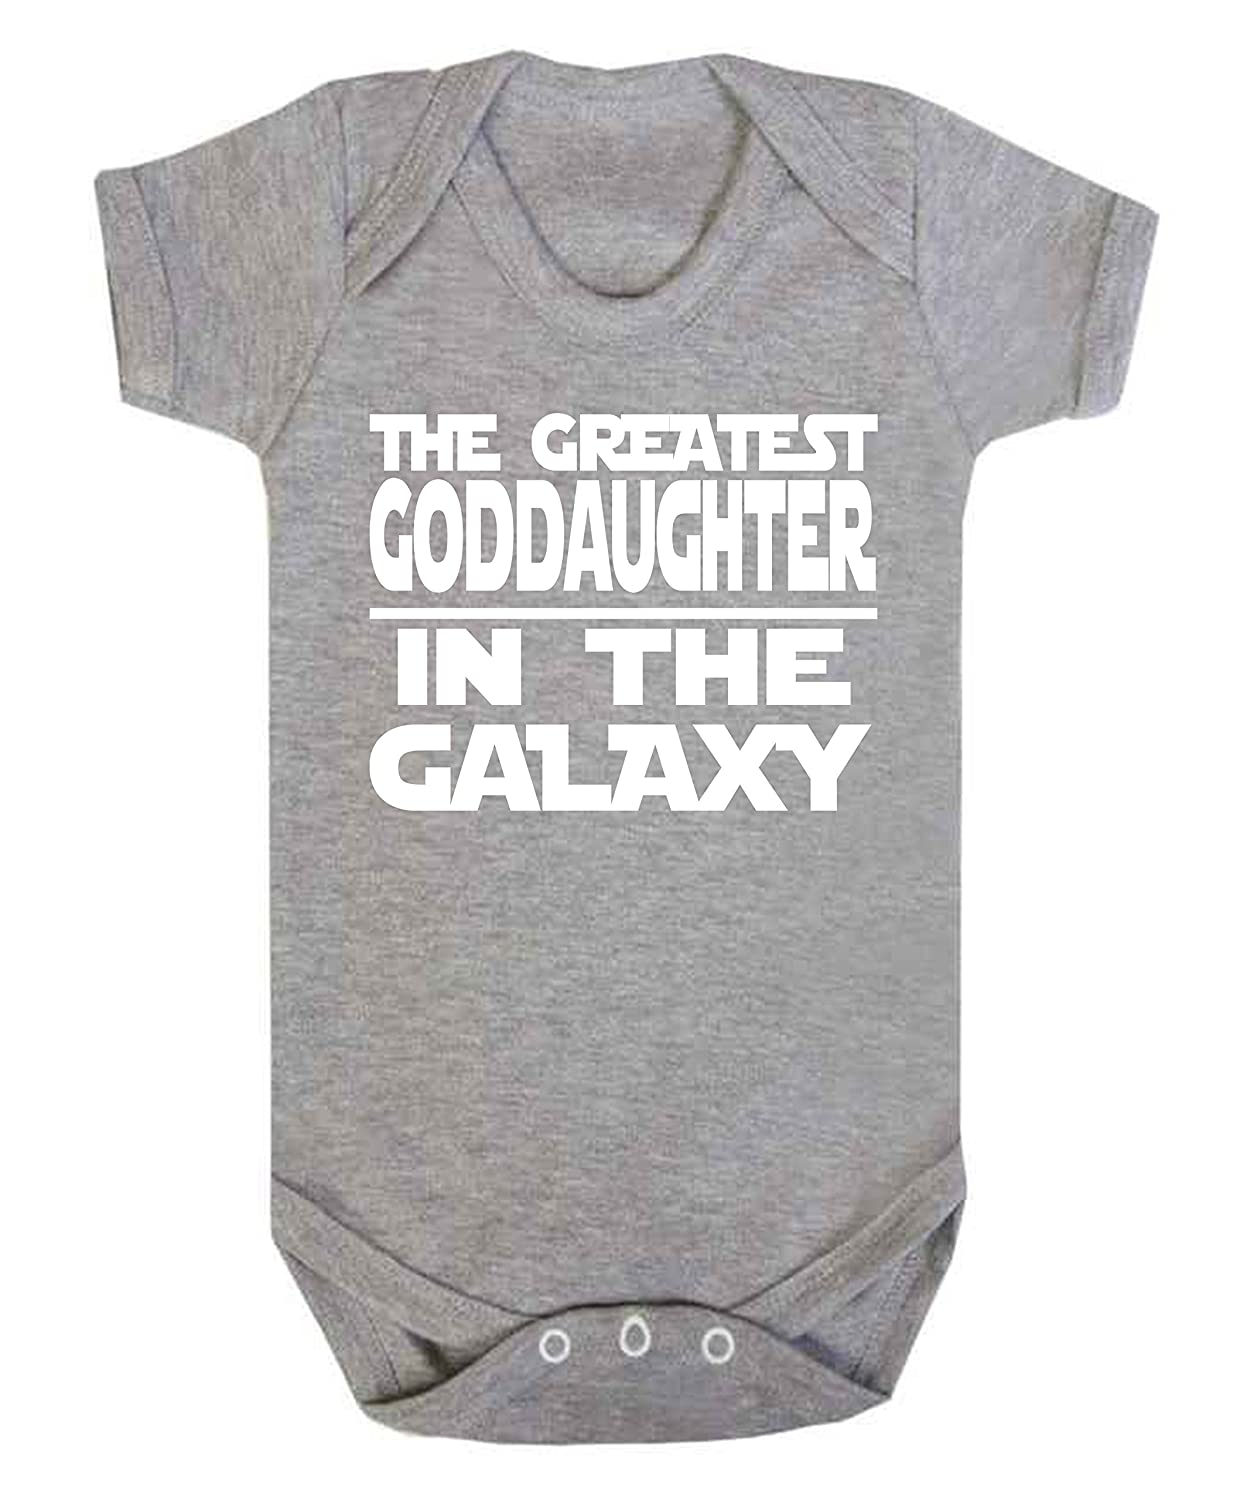 3-6 Months Greatest GodDaughter in the Galaxy Star Wars Novelty baby vest sleepsuit babygrow onesie Baby girl gifts funny Jedi Grey